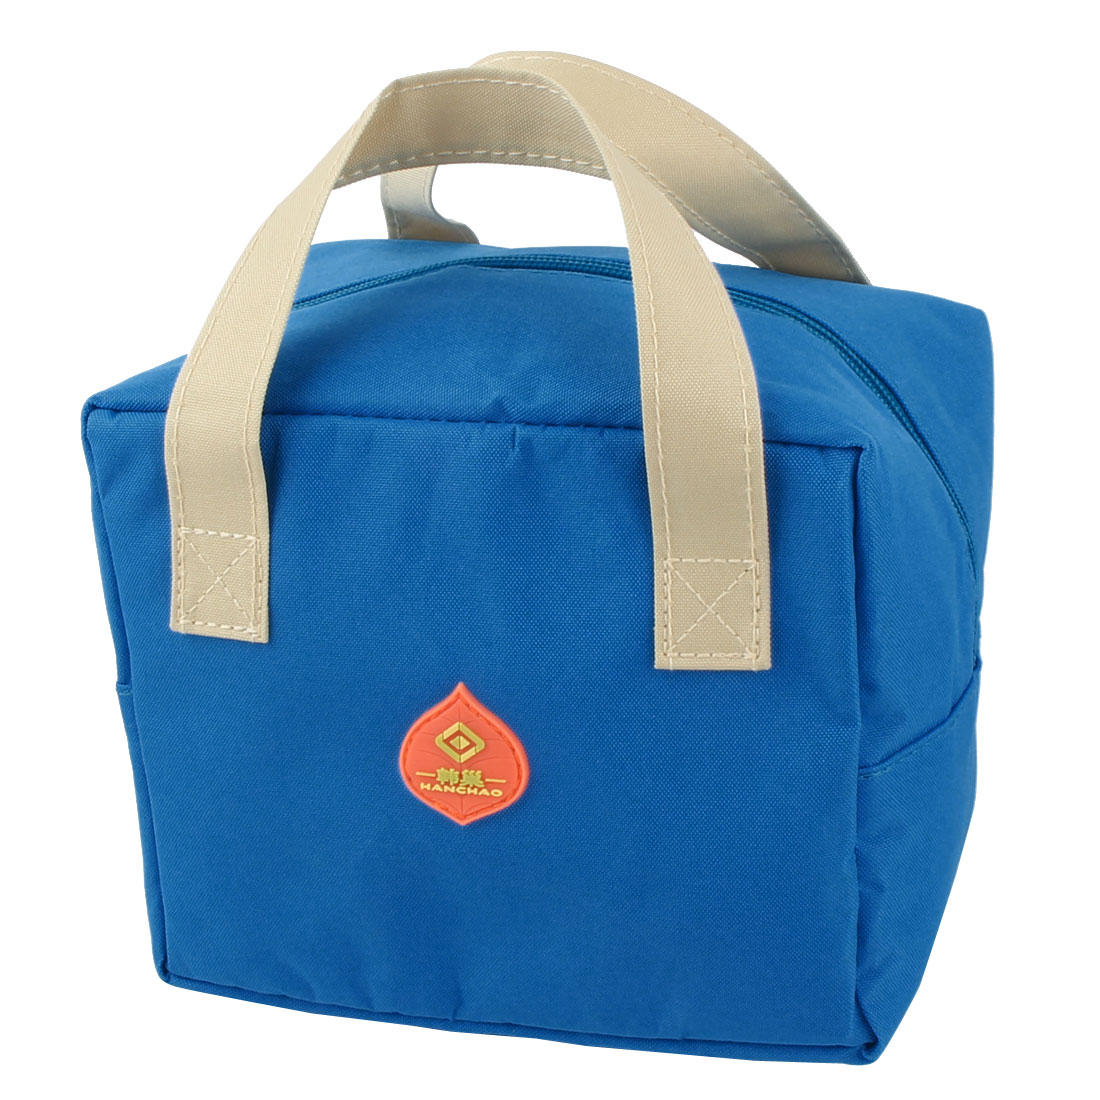 Outdoor Portable Rectangle Thermal Cooler Insulated Lunch Bag Tote Picnic Container Pouch Blue